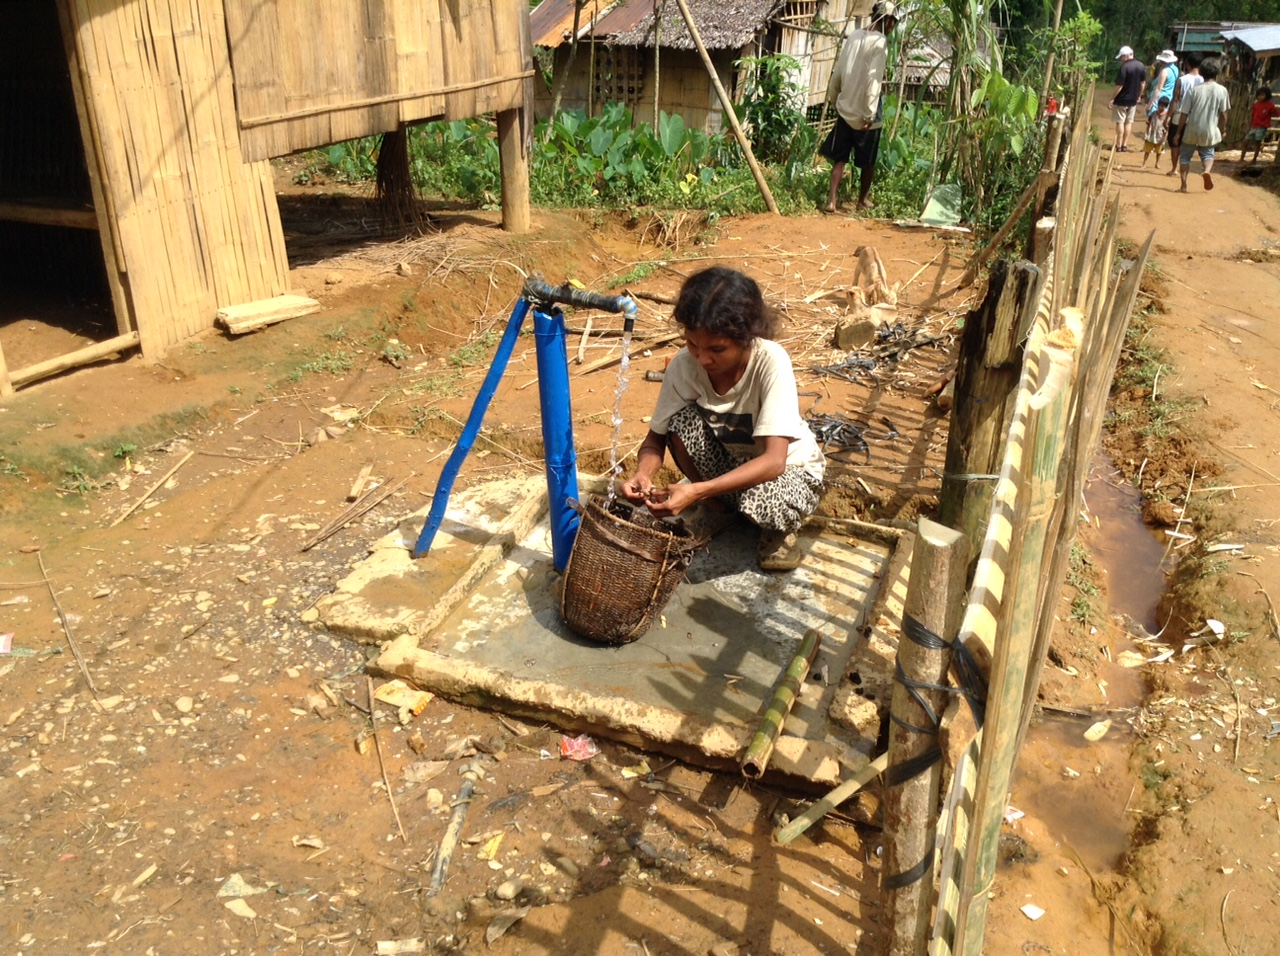 Pipes were installed to bring water into the village from a fresh mountain spring to provide the village with clean water for water faucets located throughout the village, toilets and showers and water for crops.